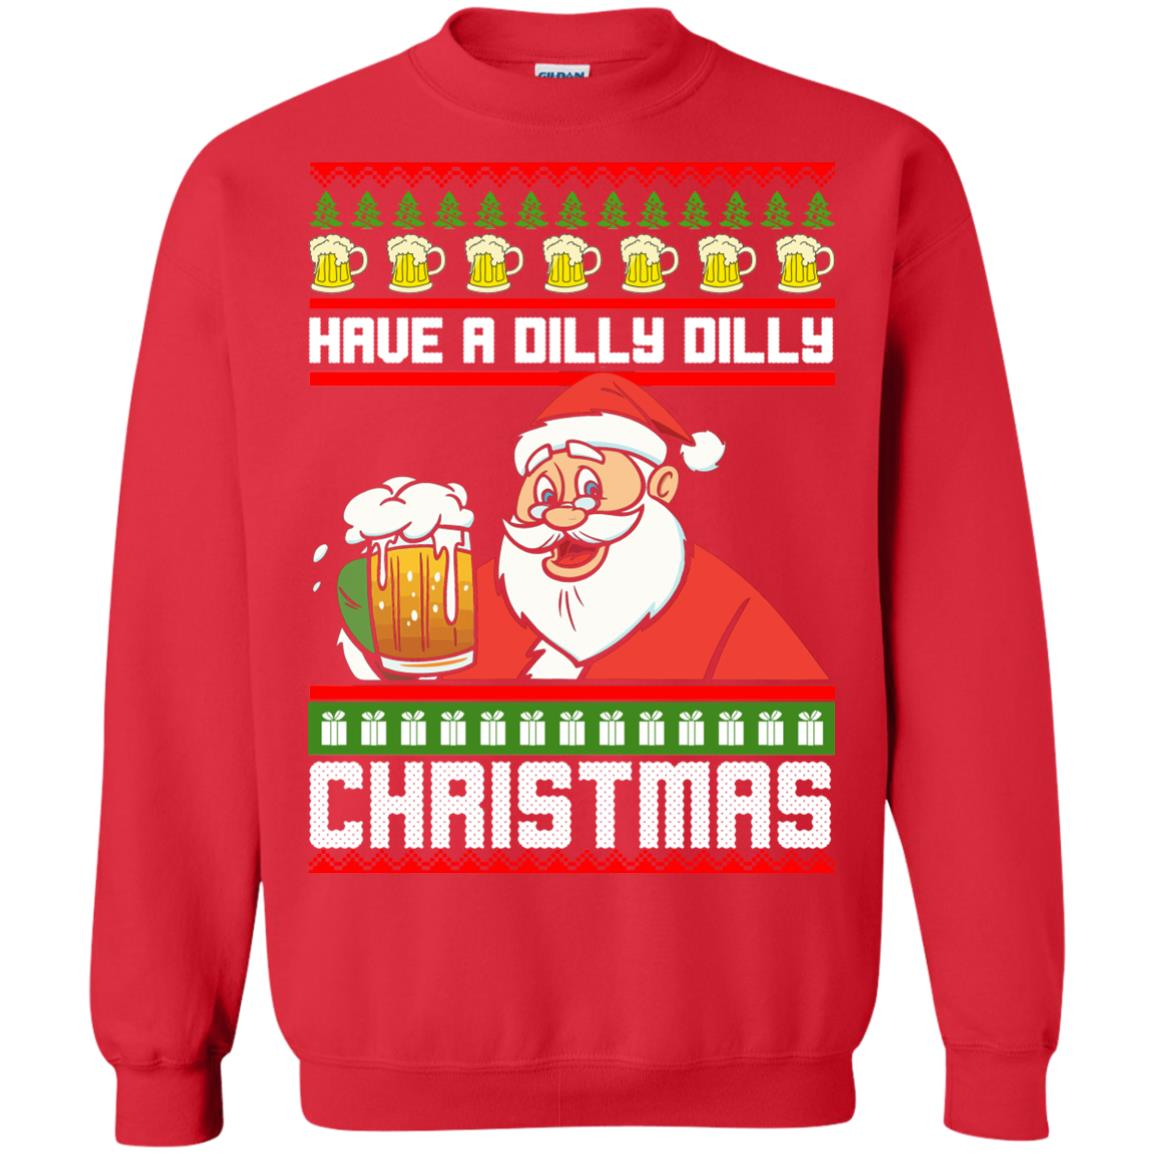 image 6134 - Have a Dilly Dilly Christmas Ugly Sweatshirt, Long Sleeve